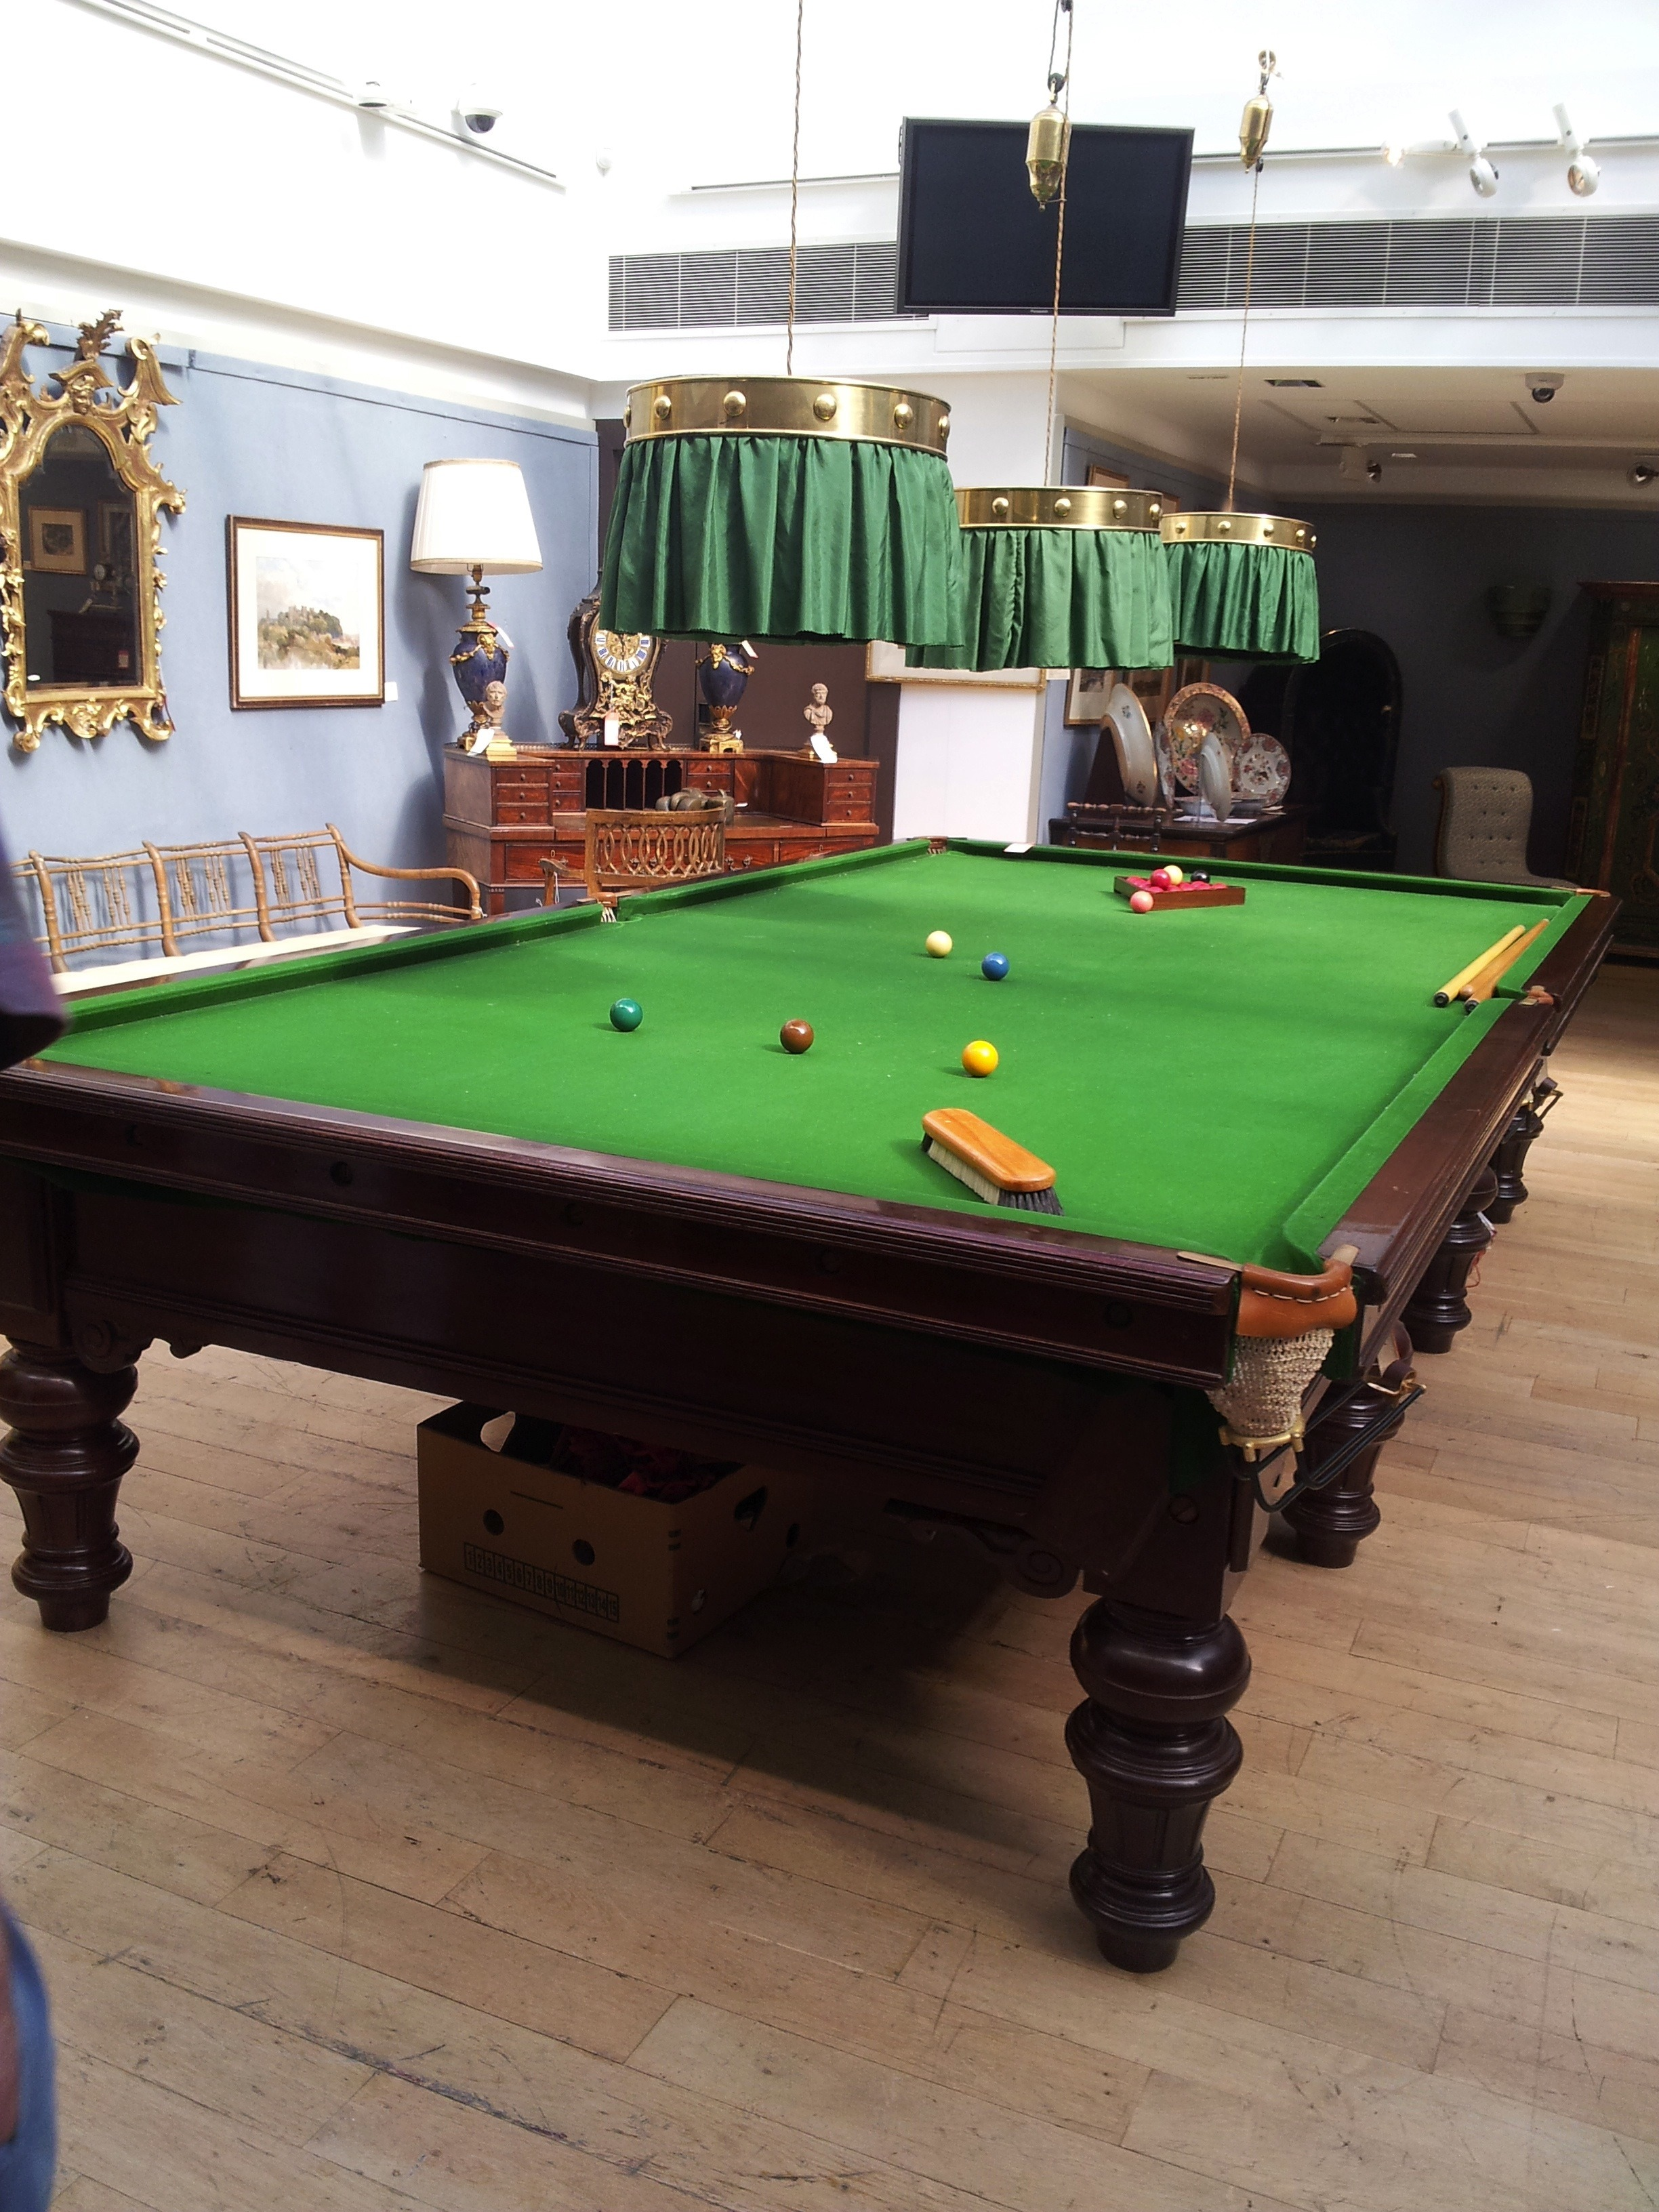 Impressive Billiards Table On View Pre July Auction Christies - Kensington pool table